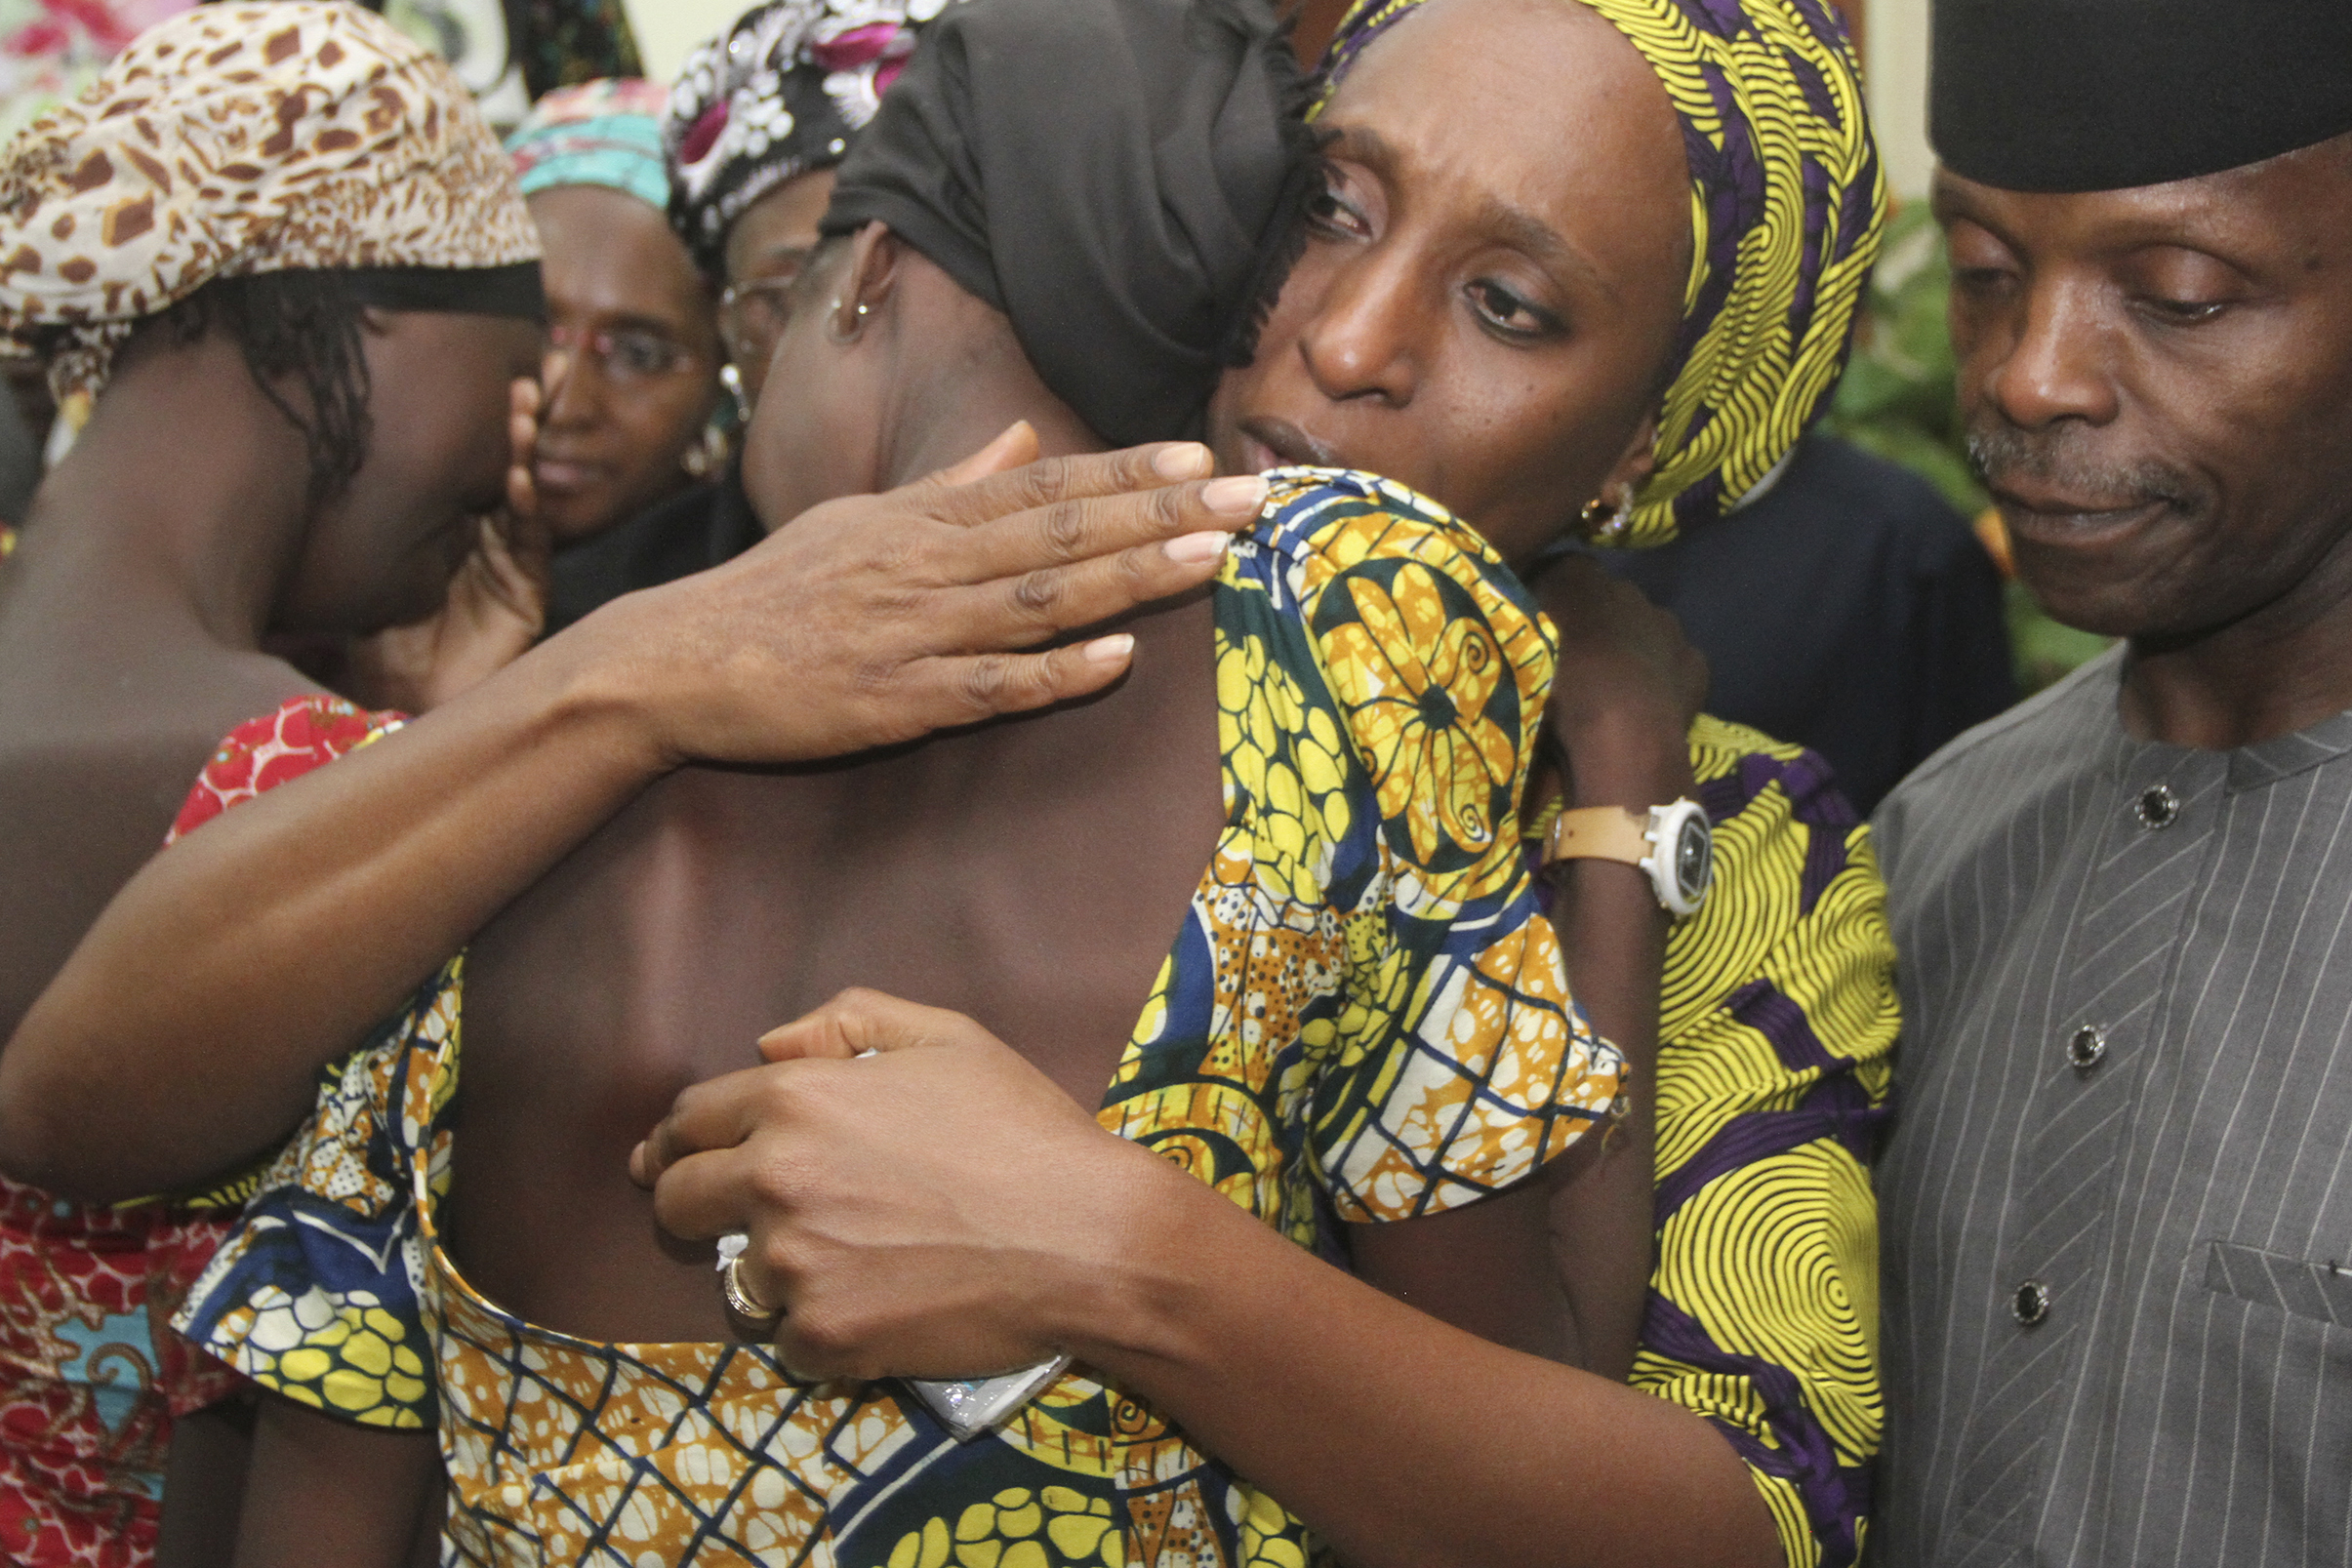 Nigerian Vice President Yemi Osinbajo (R) looks on while his wife Dolapo (C) comforts one of the 21 freed Chibok girls freed today from Boko Haram, at his office in Abuja on October 13, 2016.  Jihadist group Boko Haram has freed 21 of the more than 200 Chibok schoolgirls kidnapped more than two years ago, raising hopes for the release of the others, officials said Thursday. Local sources said their release was part of a prisoner swap with the Nigerian government, but the authorities denied doing a deal with Boko Haram. AFP PHOTO / PHILIP OJISUA